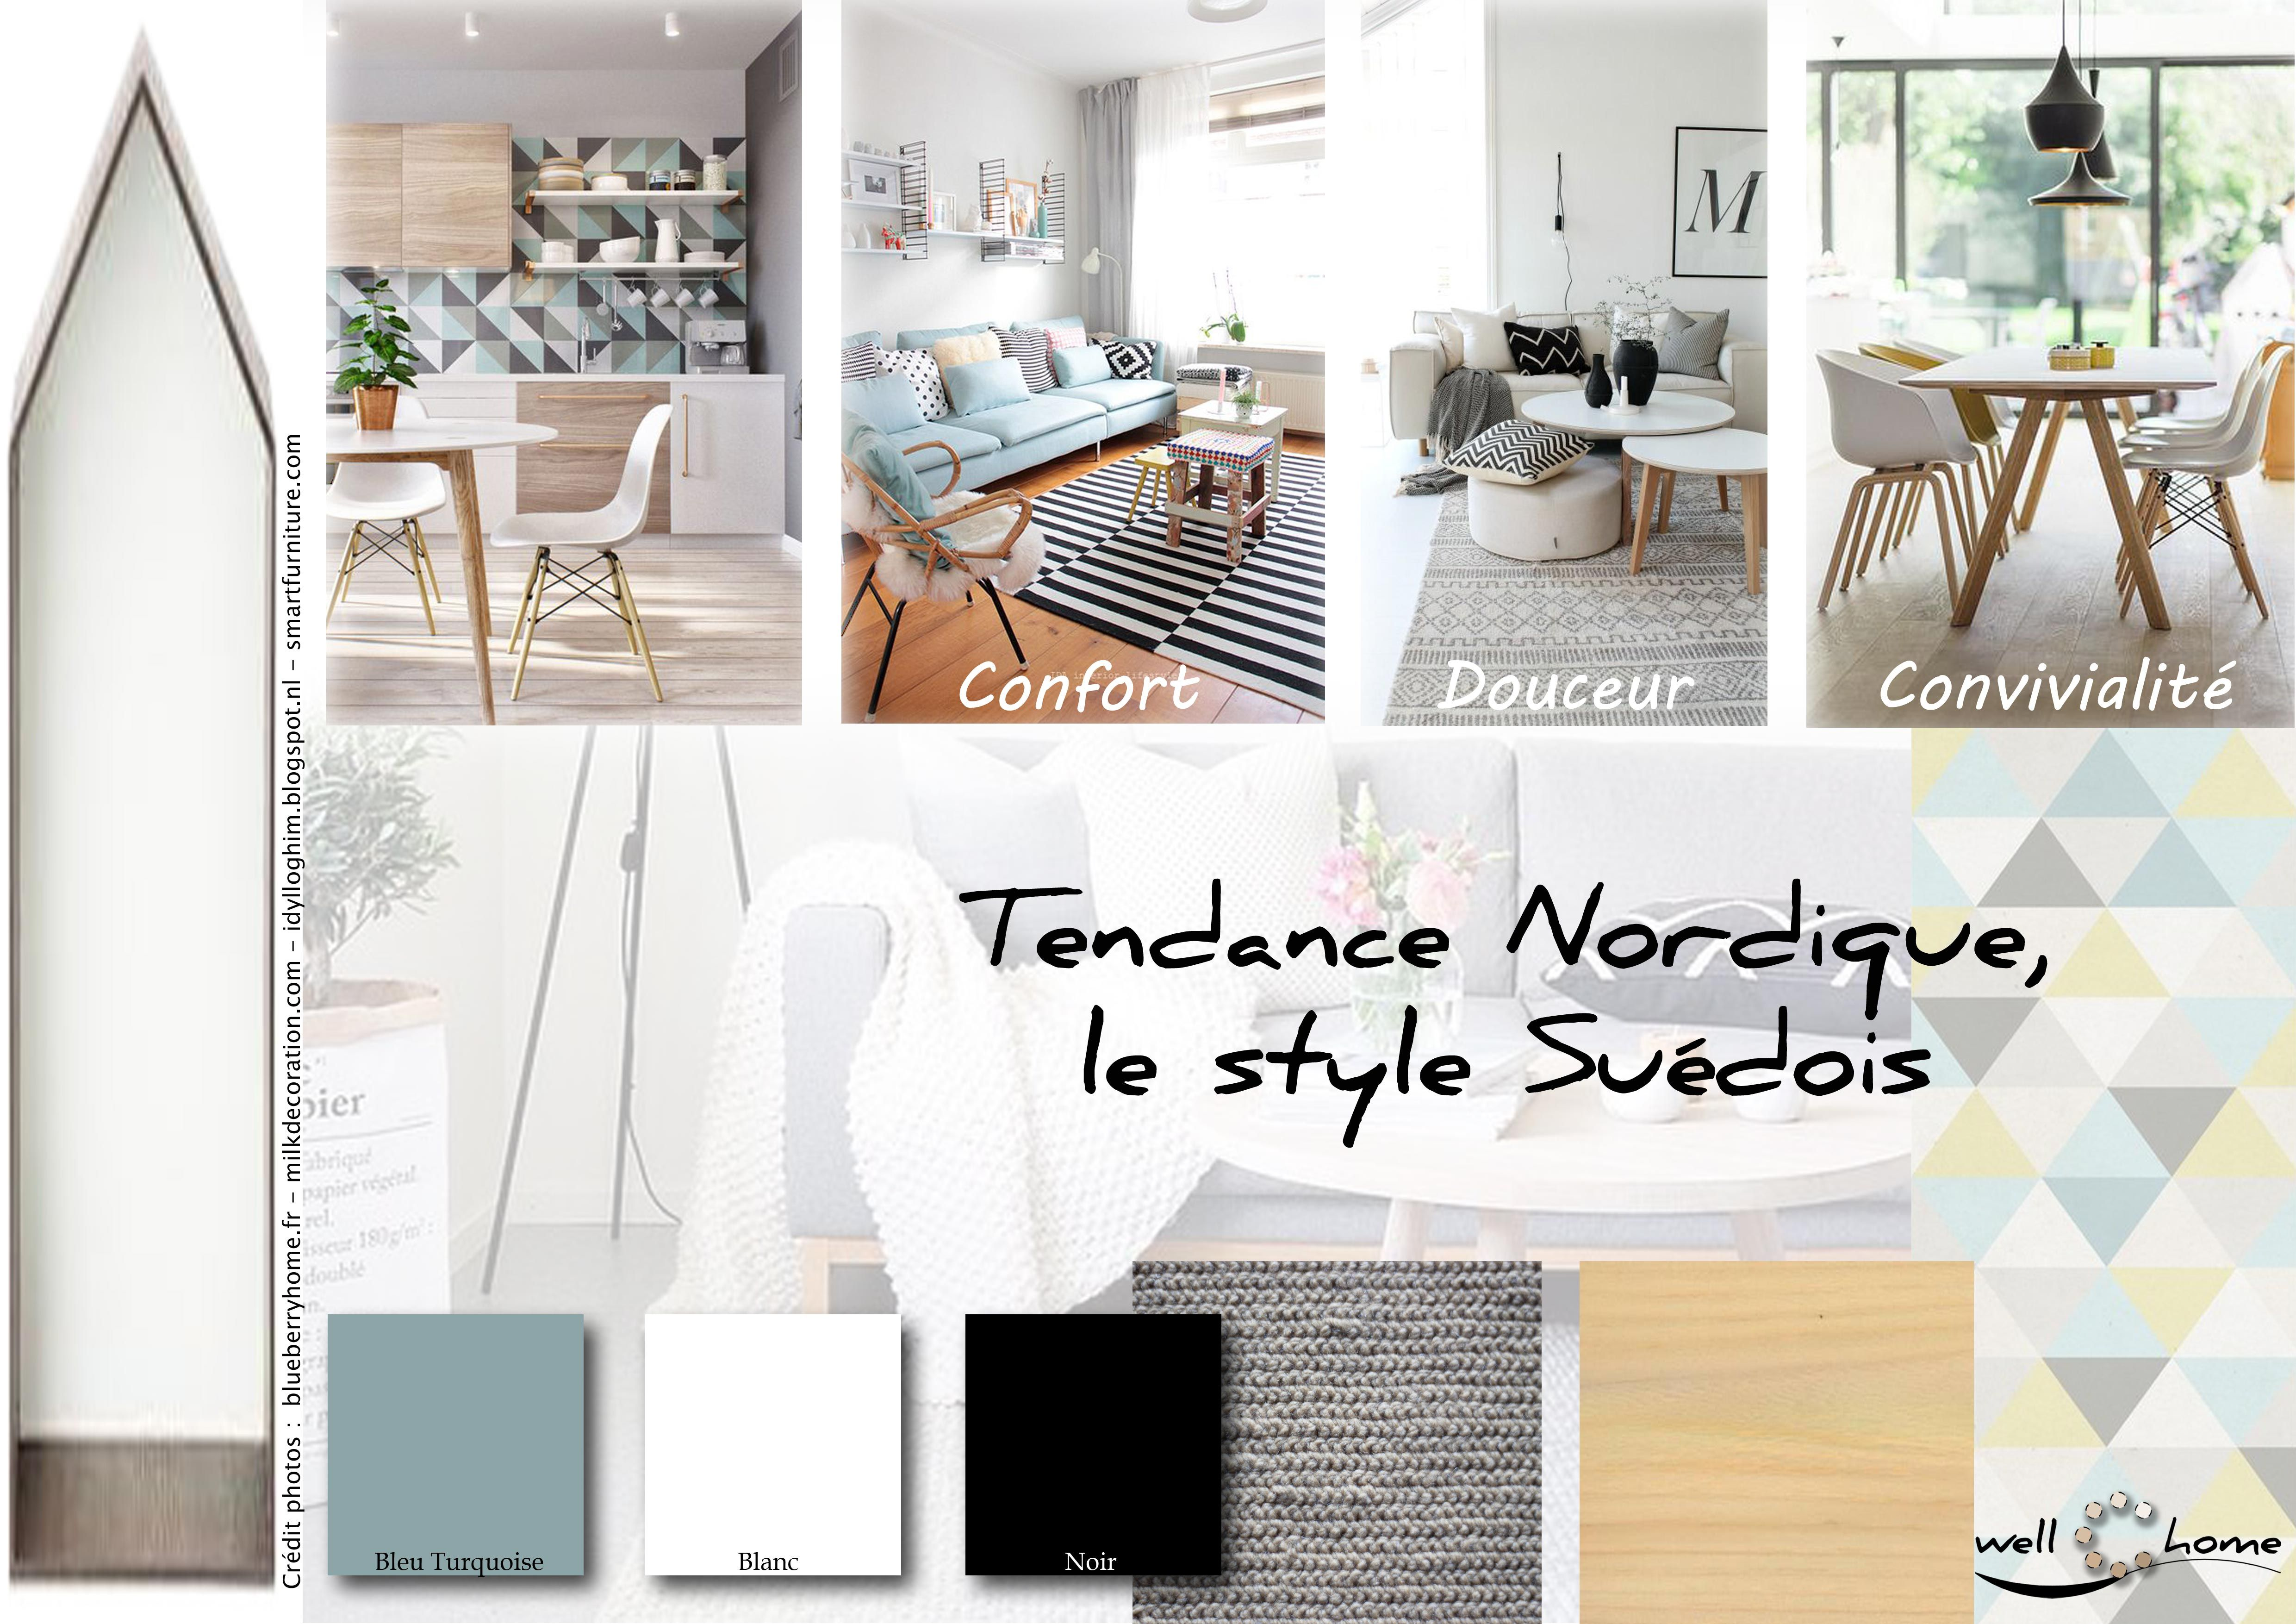 moodboard d co planche d 39 ambiance tendance nordique style su dois r alisation well c home. Black Bedroom Furniture Sets. Home Design Ideas